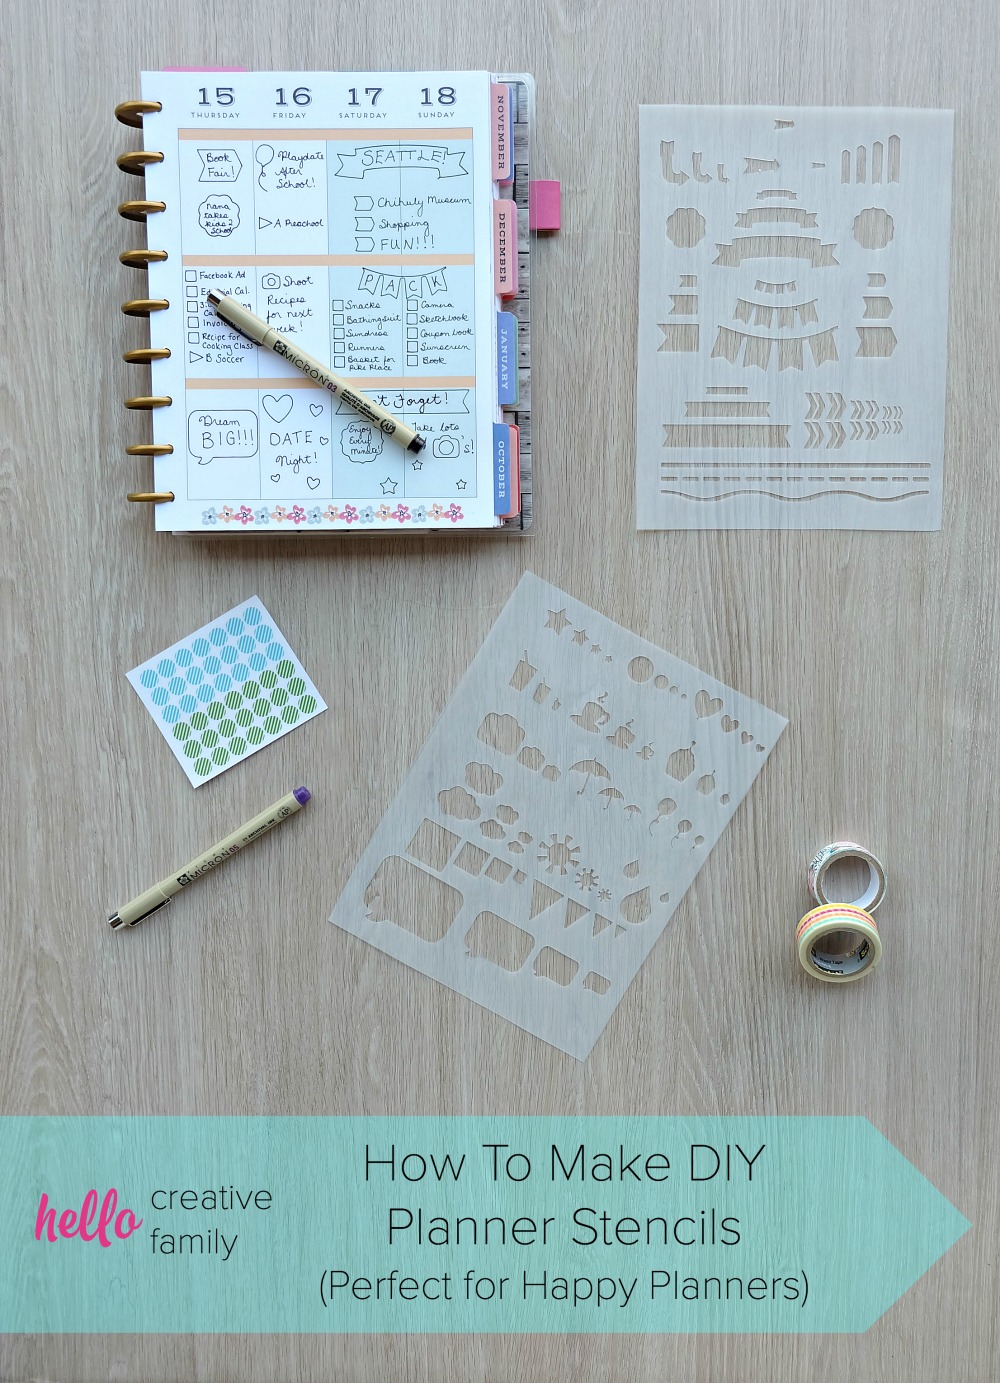 How To Make DIY Planner Stencils Using Your Cricut (Perfect for Happy Planners)